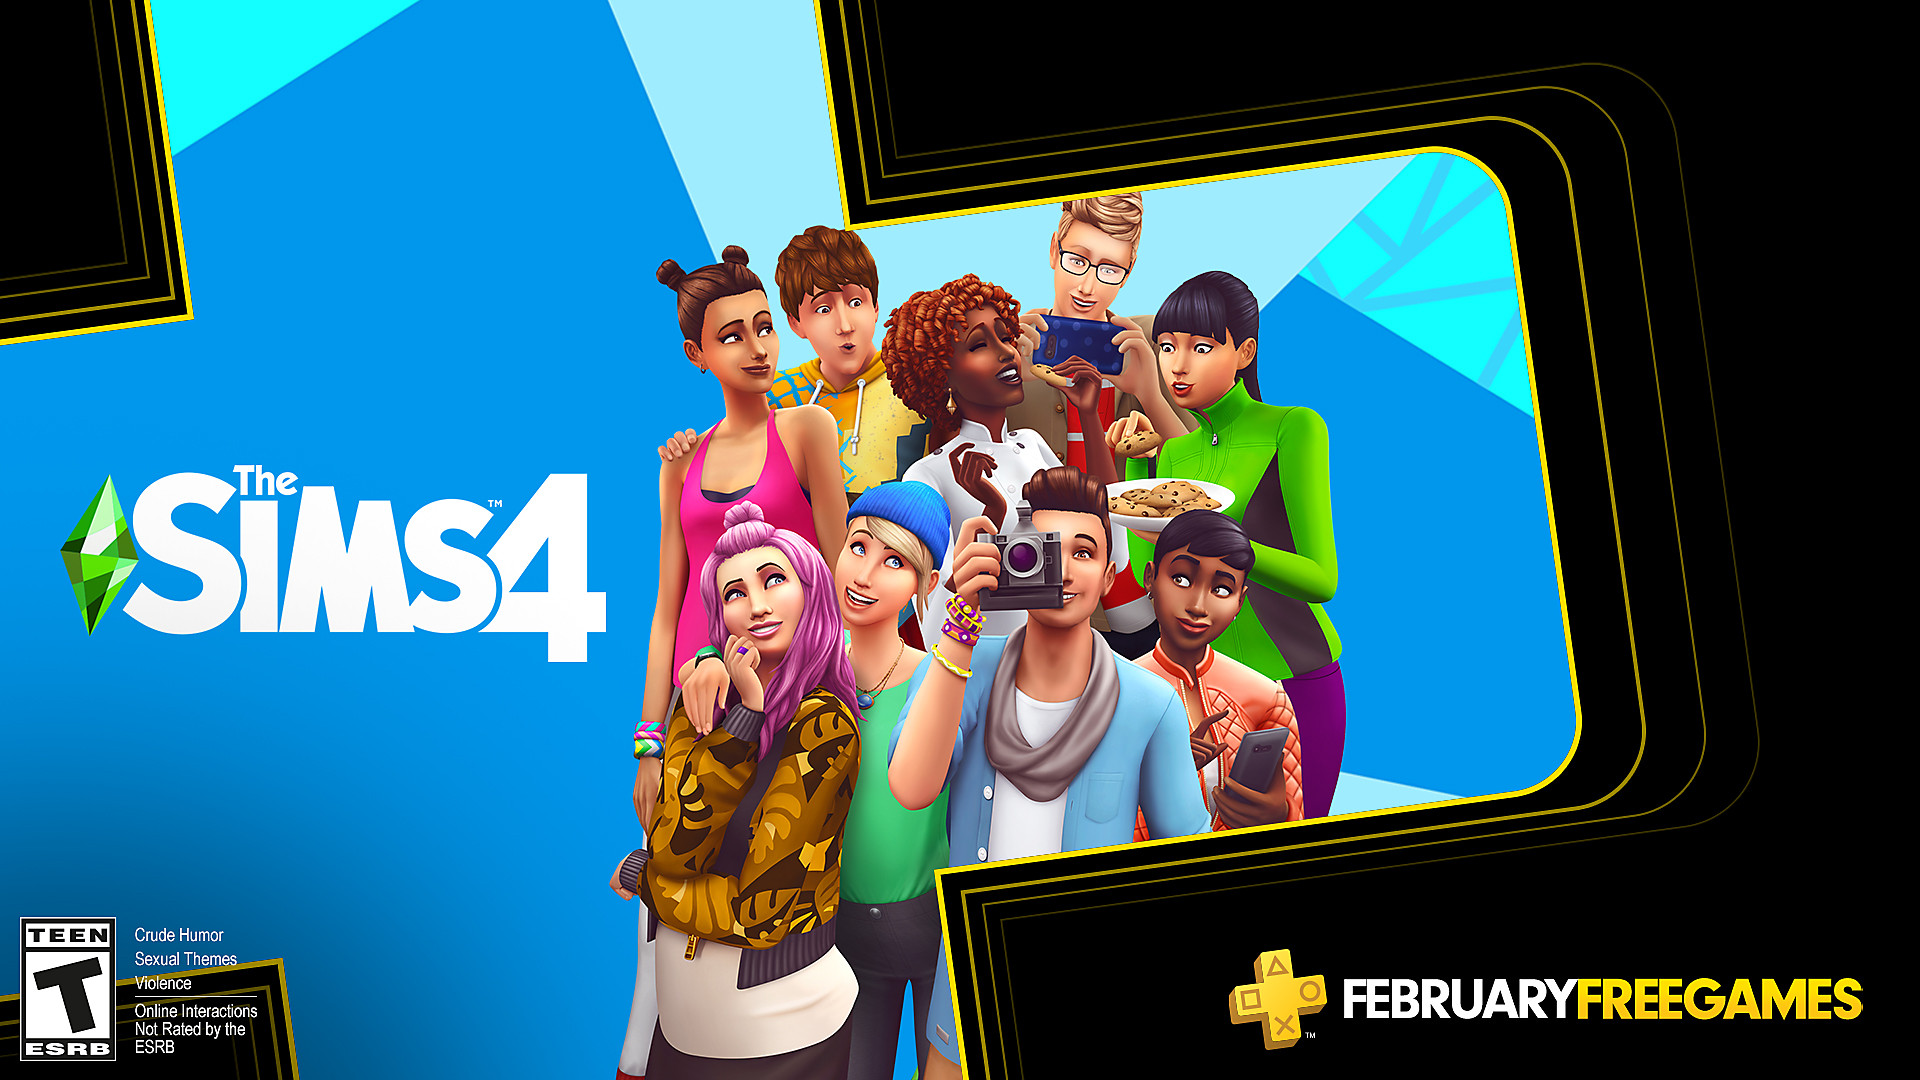 Click here to get The Sims 4 free from the PlayStation Store for PlayStation Plus members